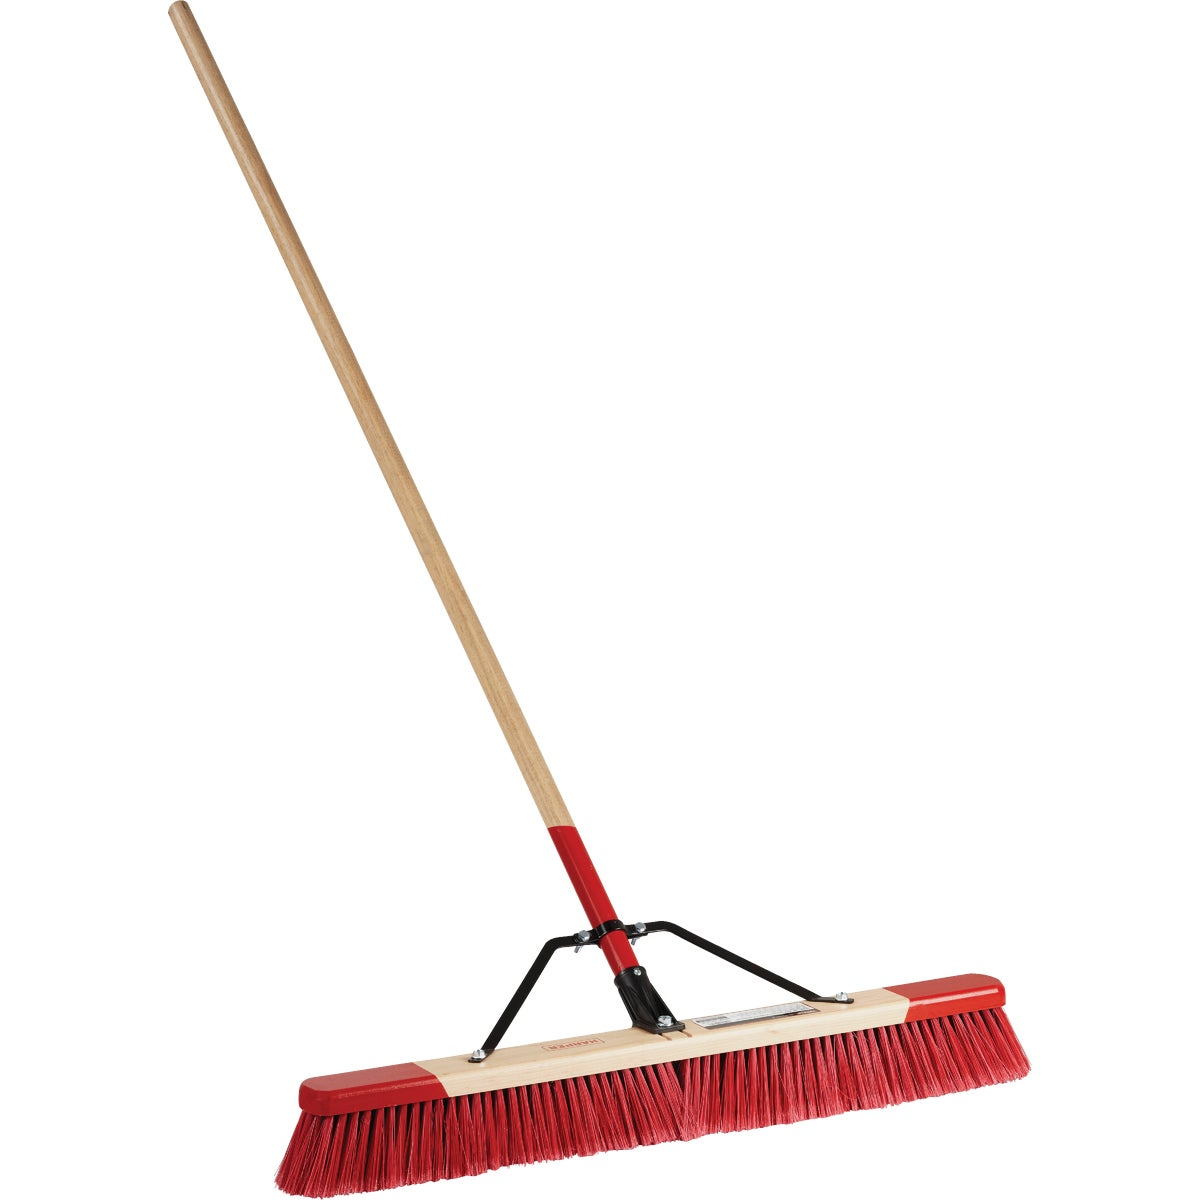 "30"" MEDIUM SURFACE BROOM - 553130A by Harper Brush Incom"